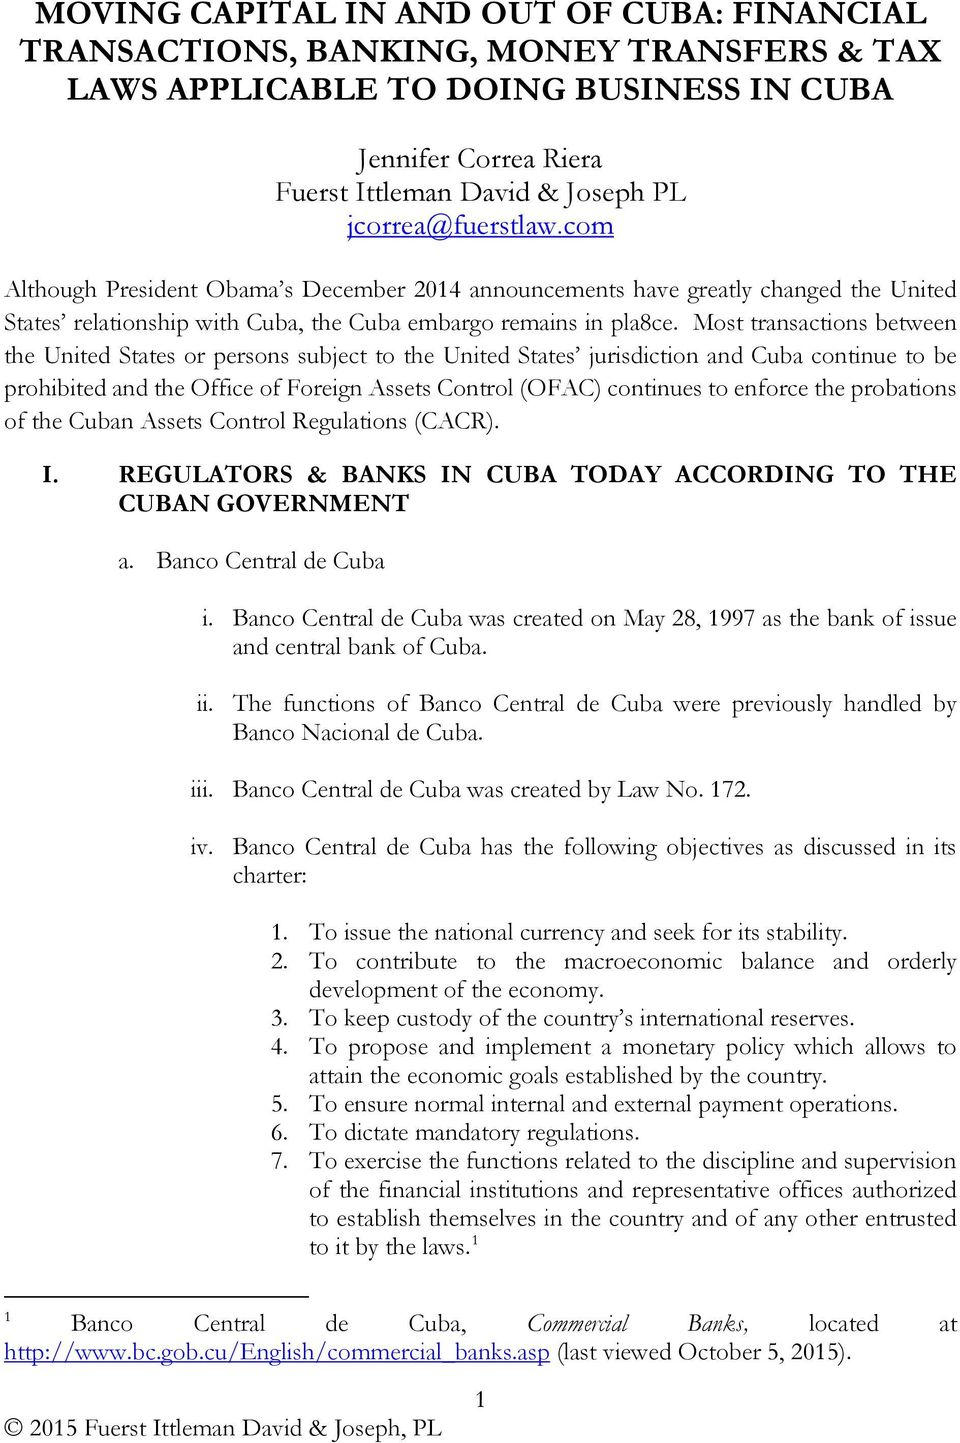 Most transactions between the United States or persons subject to the United States jurisdiction and Cuba continue to be prohibited and the Office of Foreign Assets Control (OFAC) continues to